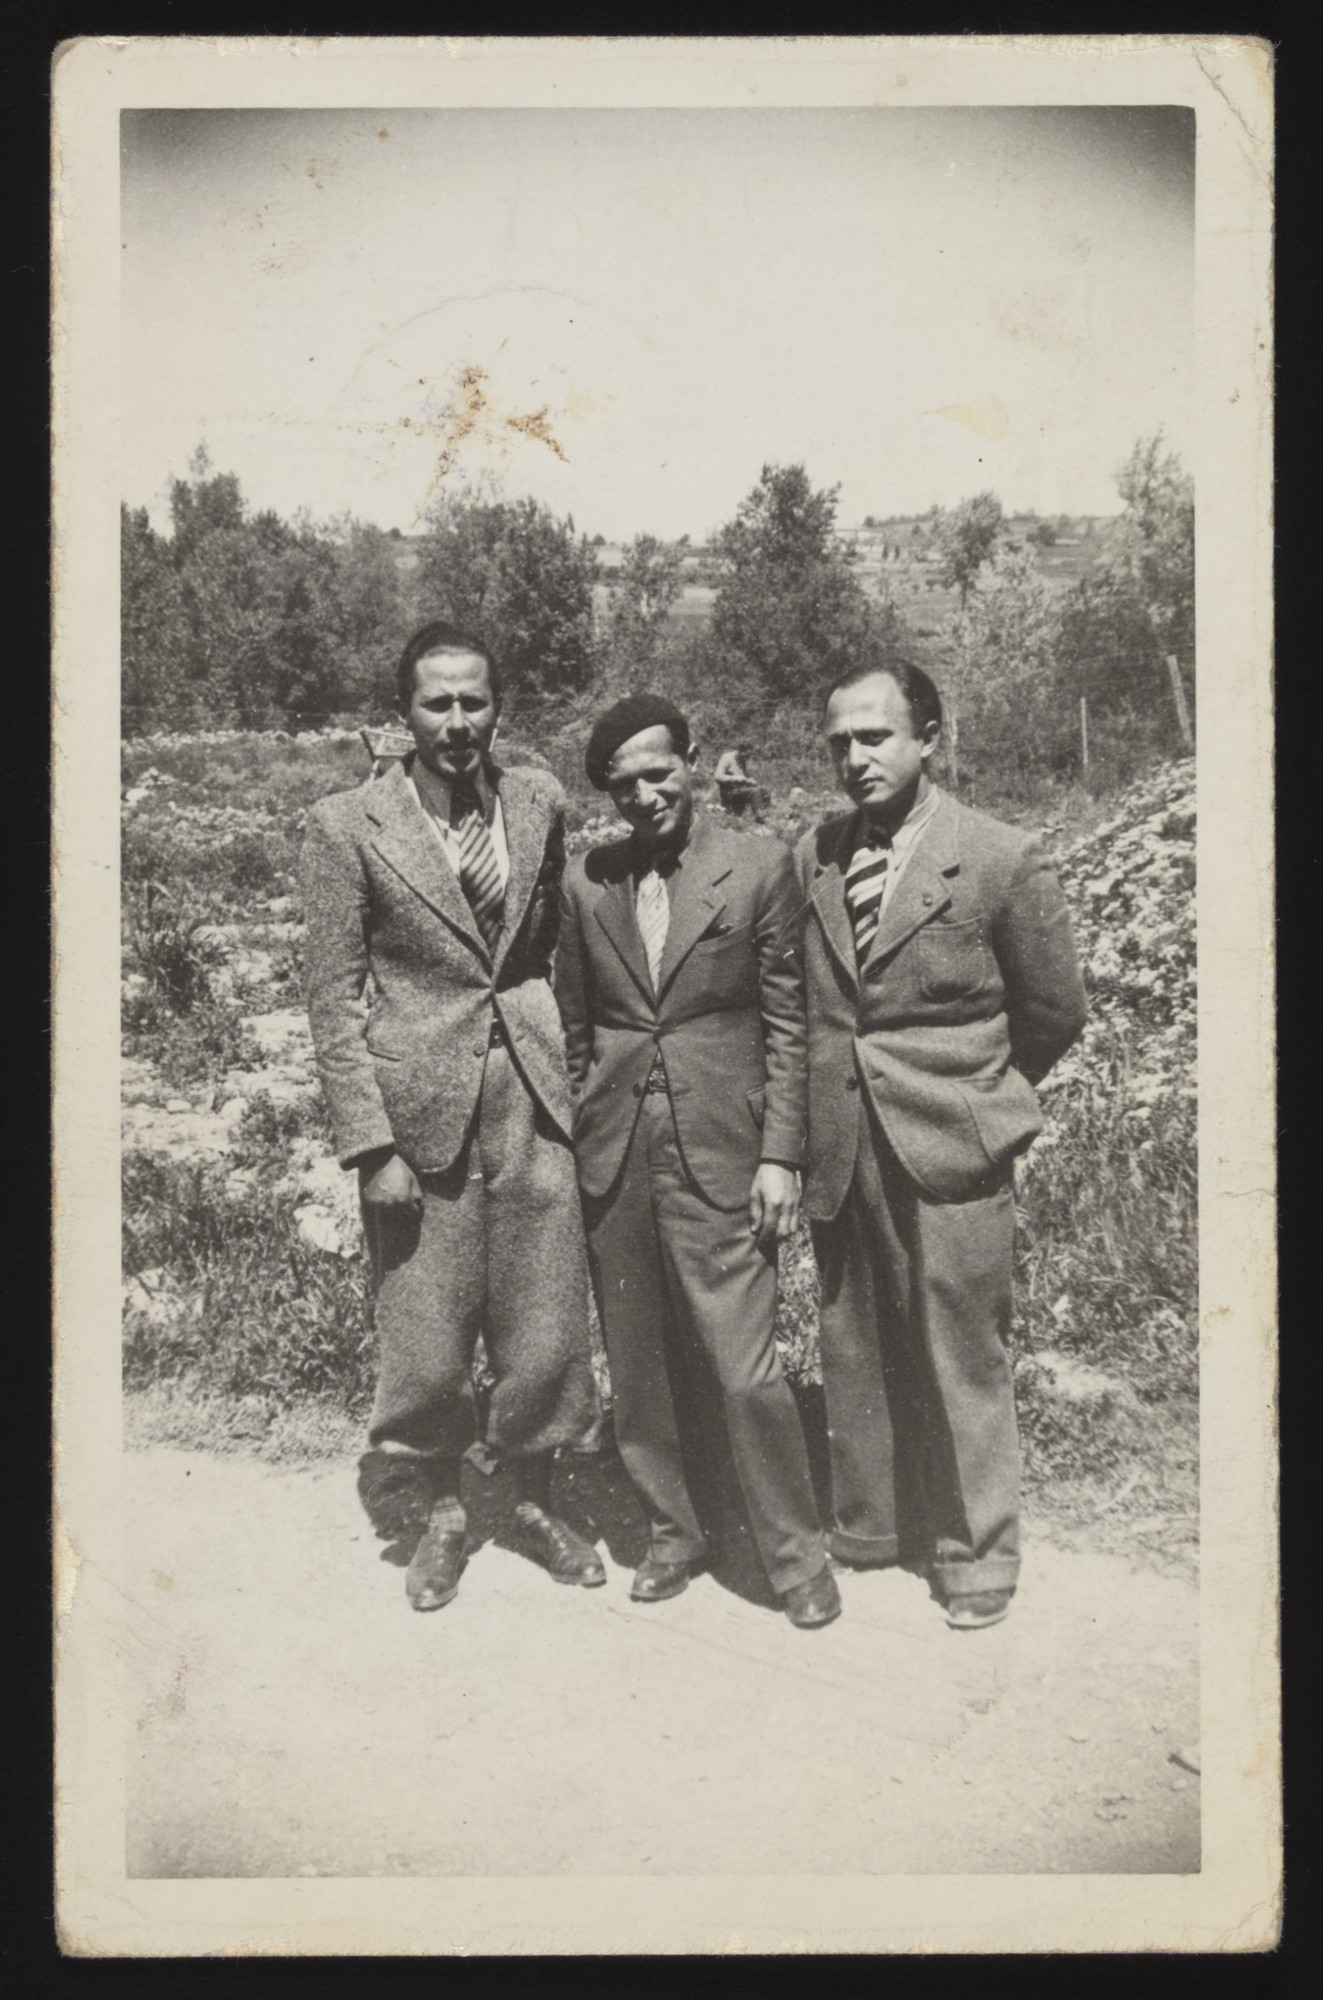 Three internees pose together in Les Milles internment camp in southern France.  Pictured are Freddy Horn, Fritz Tockus (donor's brother-in-law) and Ludwig Cohn (donor's brother).